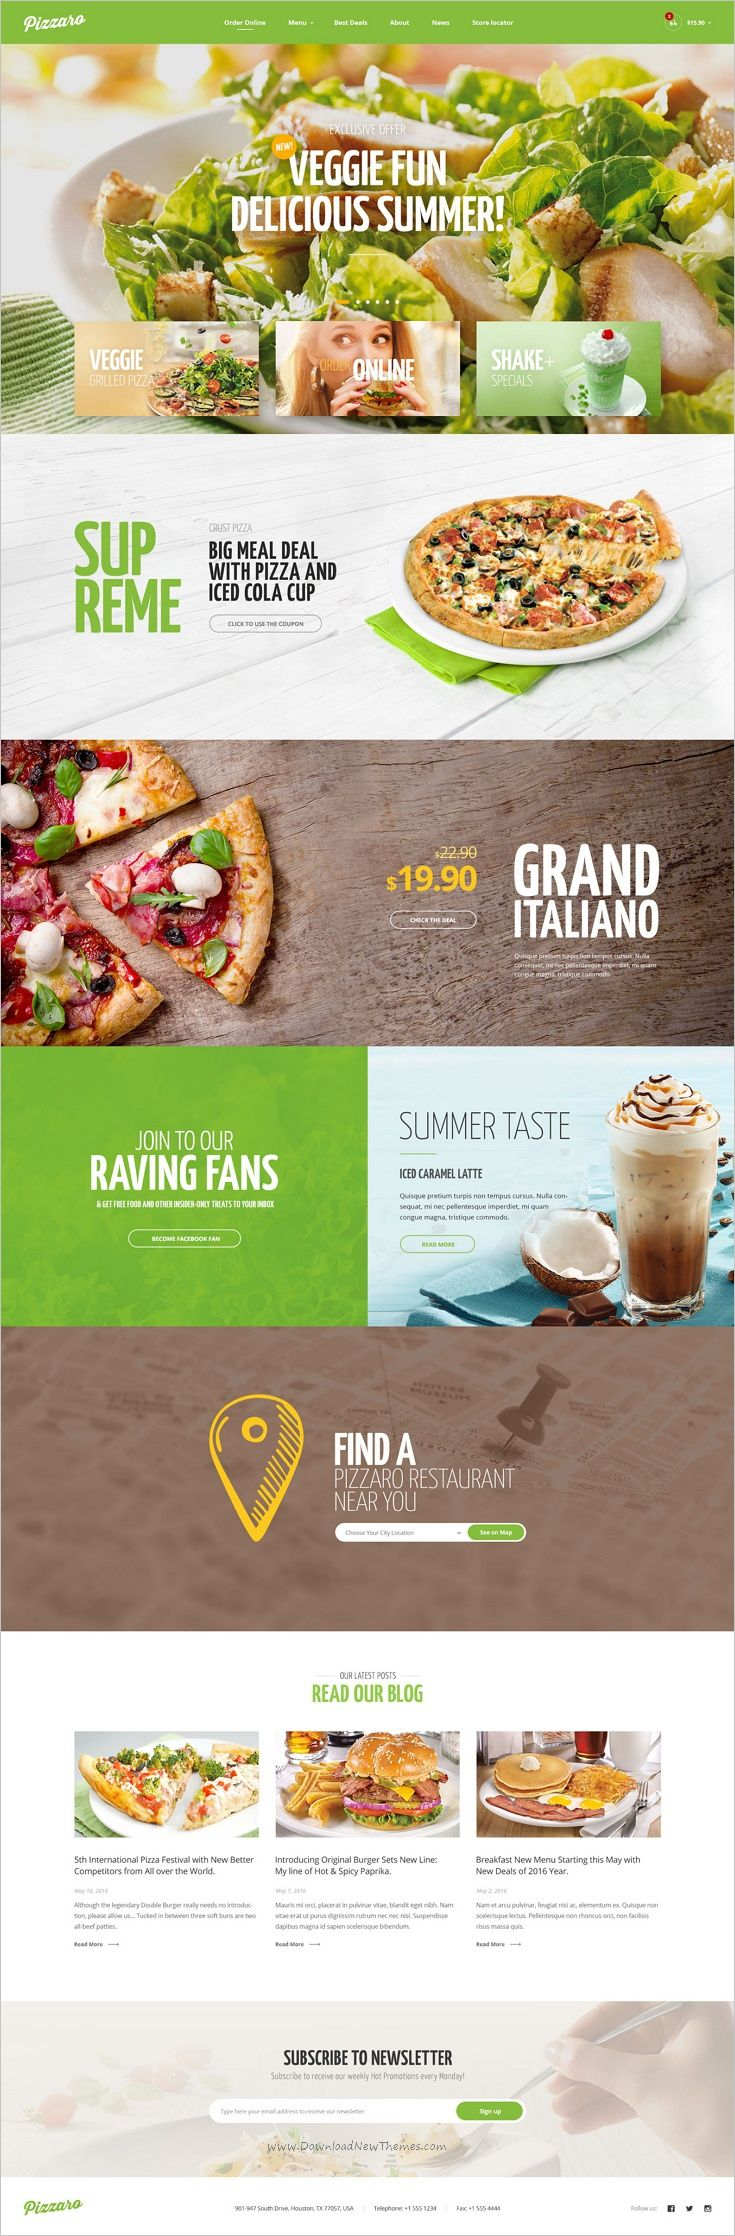 Pizzaro is modern and elegant design responsive 7in1 #WordPress theme for #webdesign fast food and #restaurant websites download now➩ https://themeforest.net/item/pizzaro-food-online-ordering-woocommerce-theme/19209143?ref=Datasata